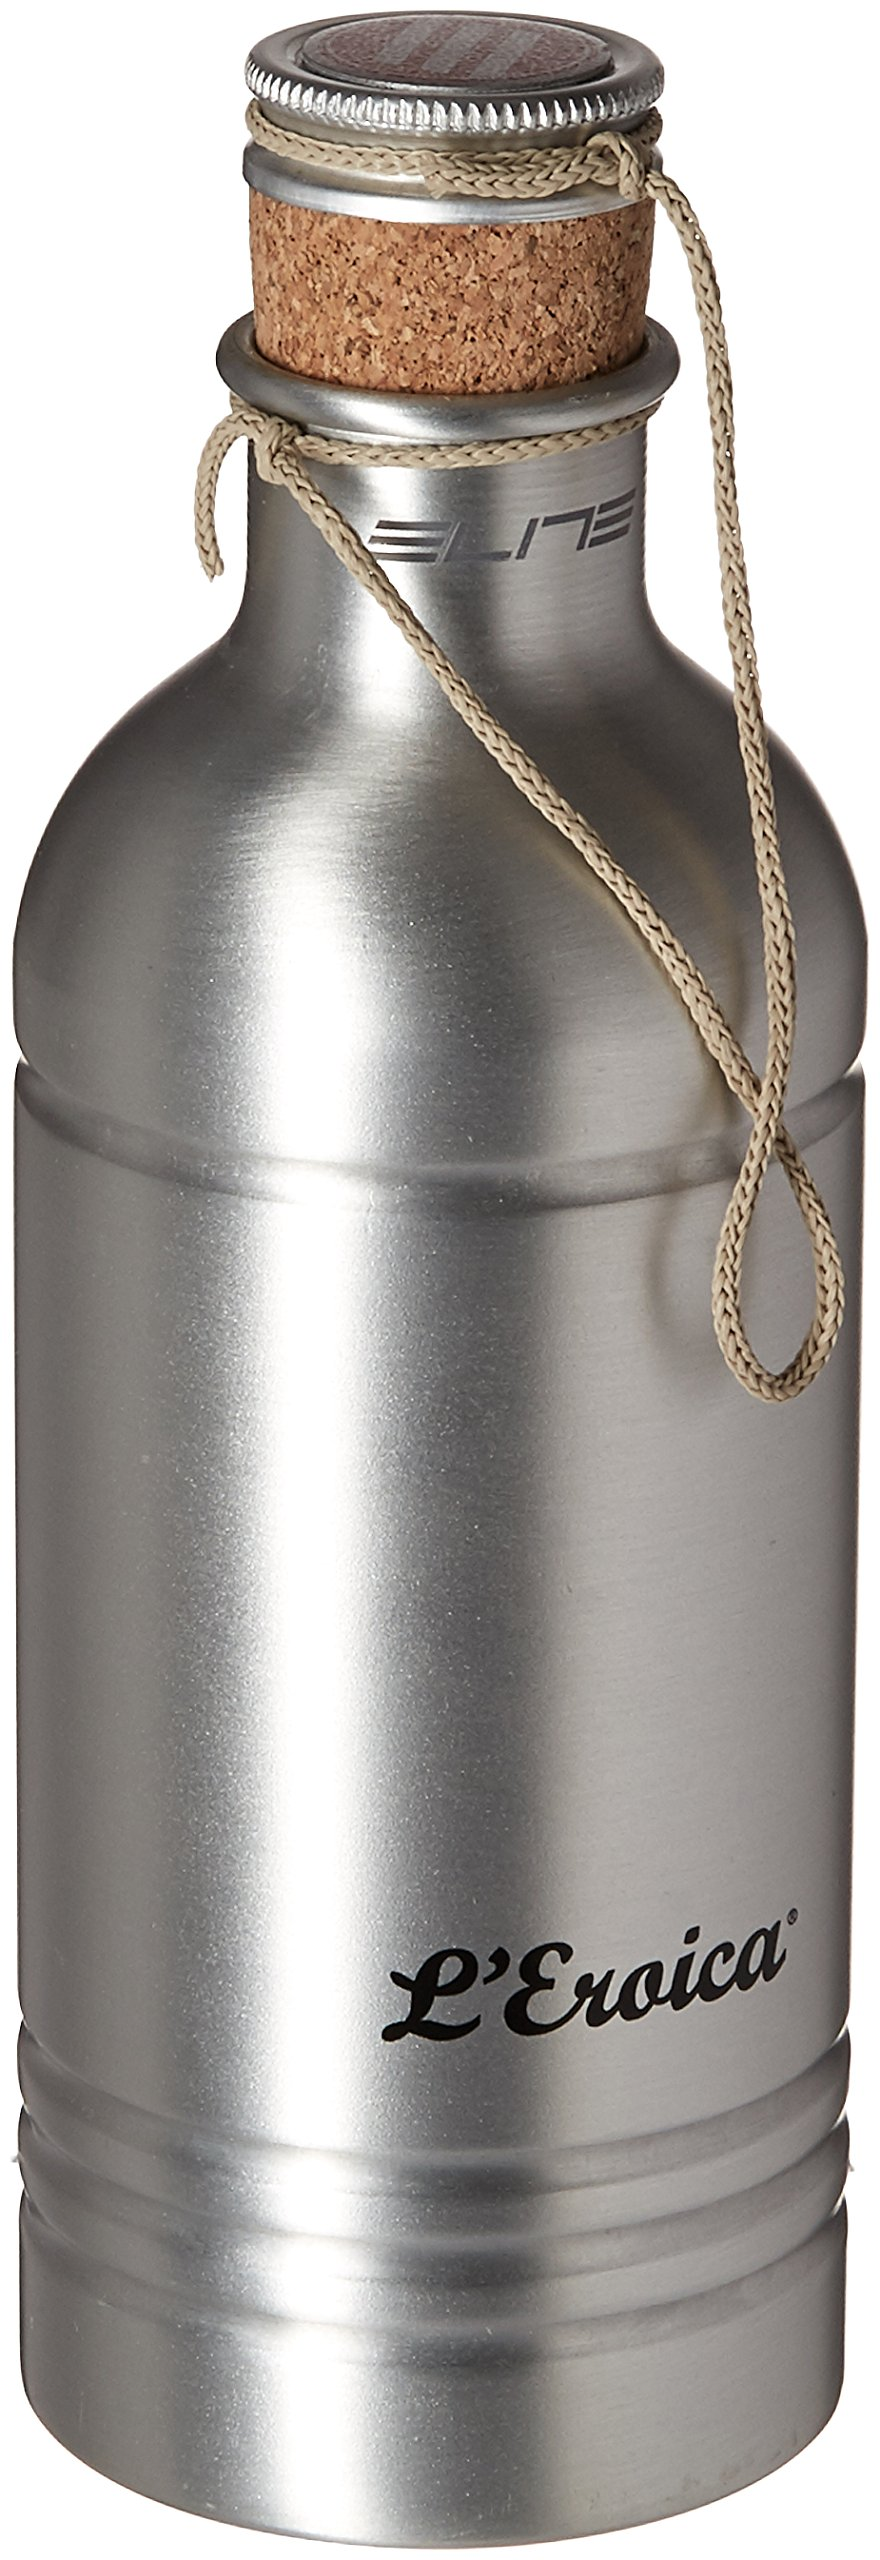 Elite 0150201 Eroica Water Bottle, 600ml, Silver by Elite